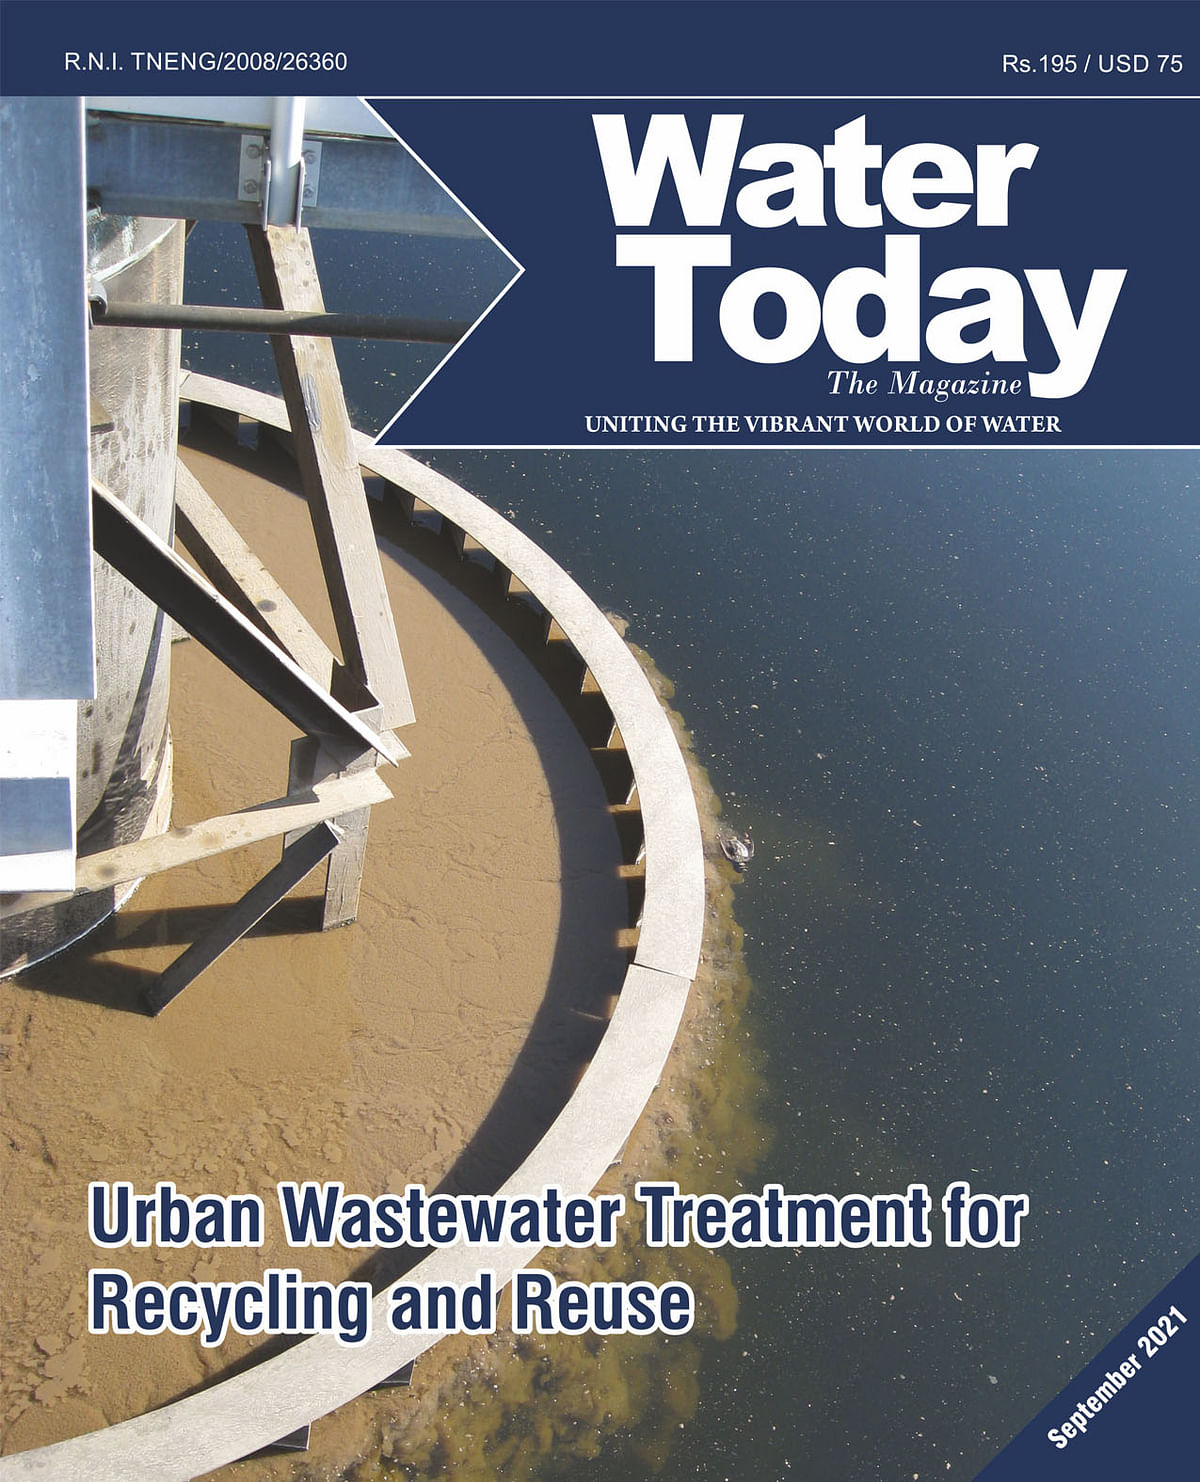 Urban Wastewater Treatment for Recycling and Reuse